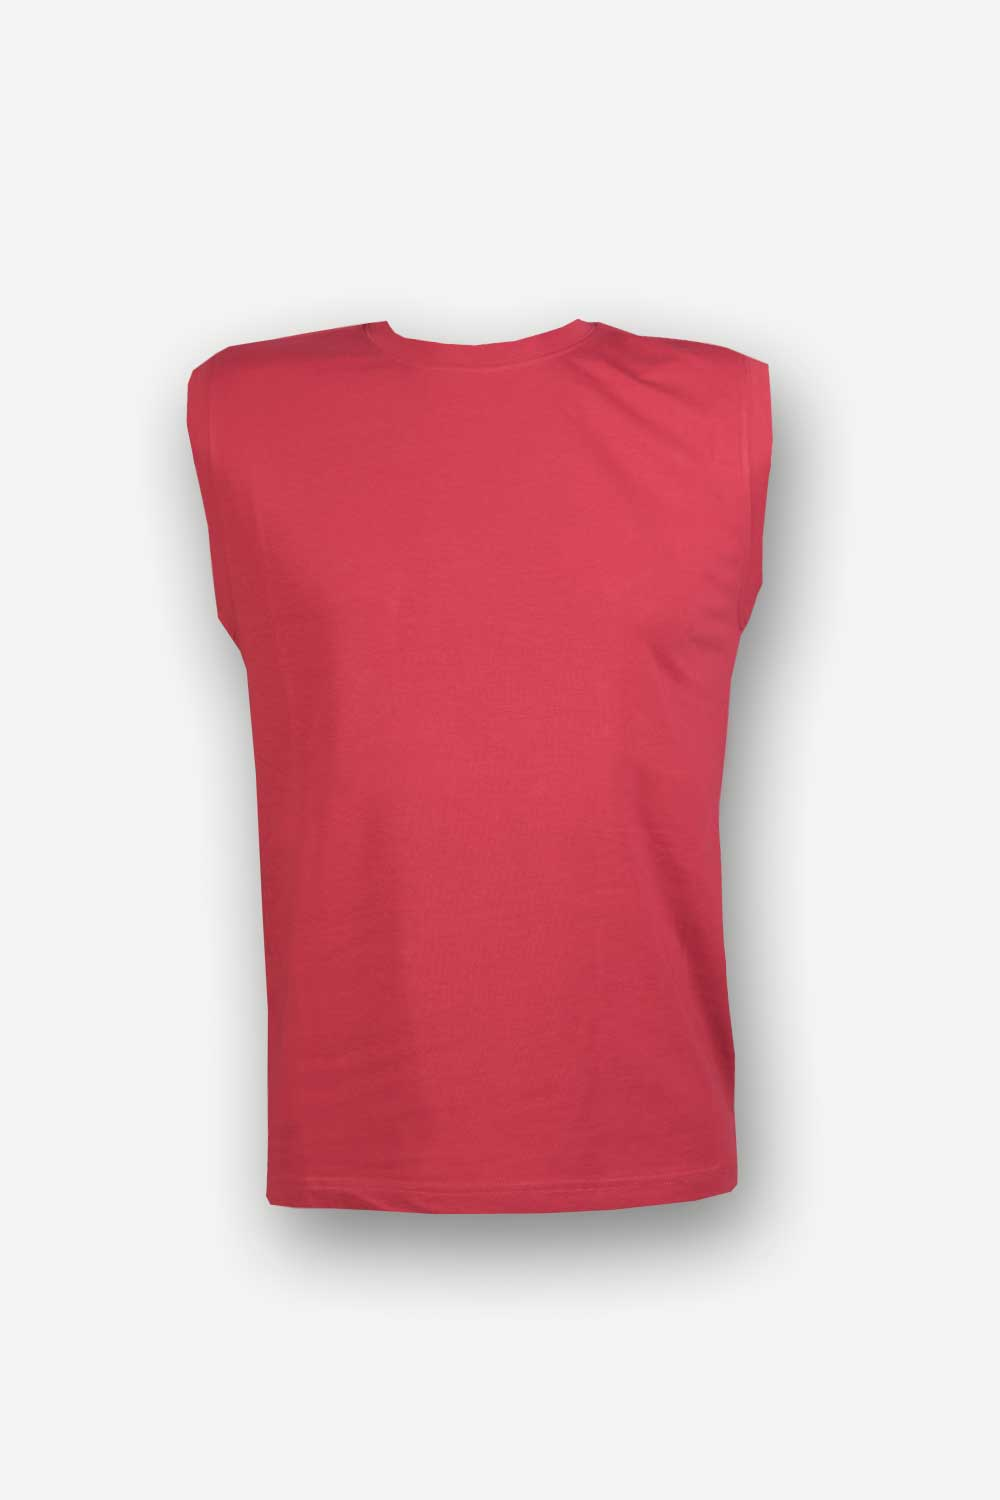 41f00014-red